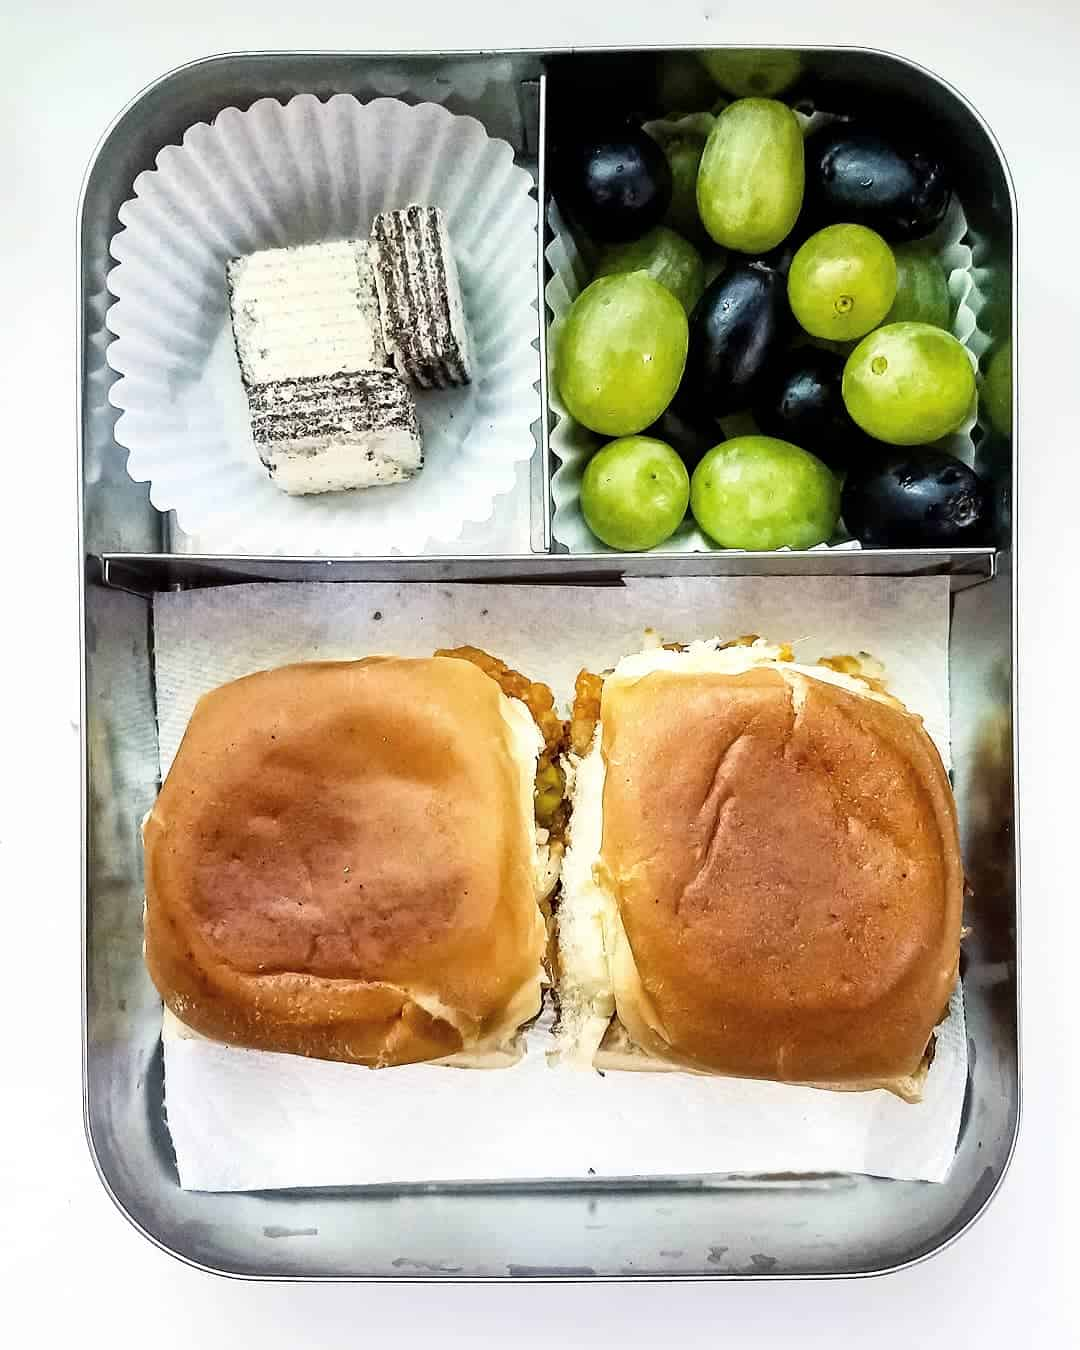 Pav bhaji, Black and green Grapes and chocolate filled vanilla wafers as sweet treat